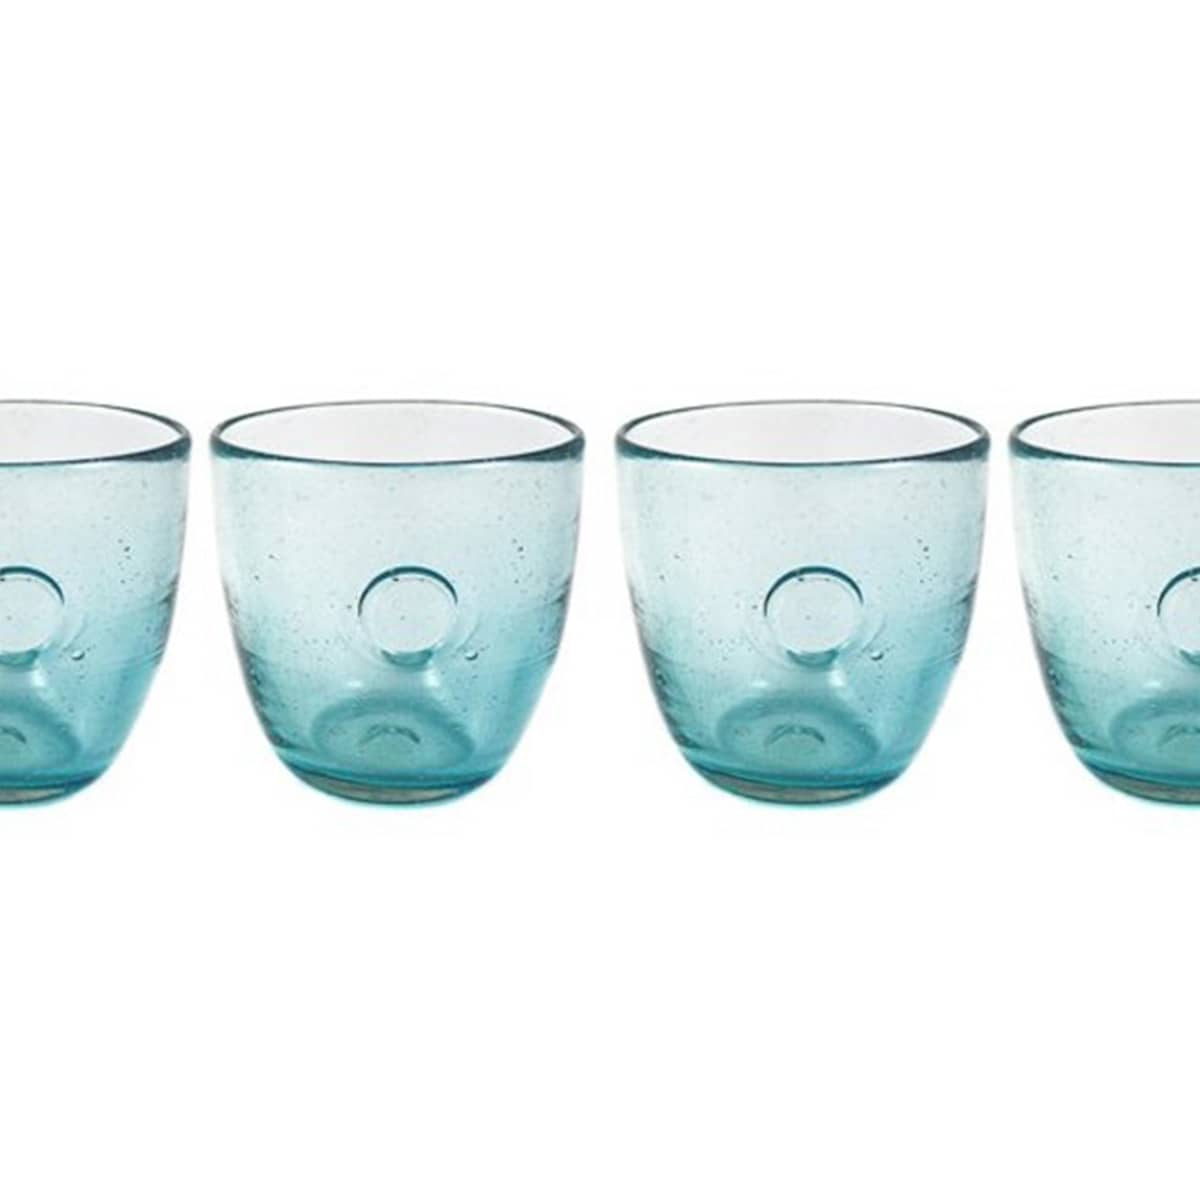 10 Wine Glasses That Can Go in the Dishwasher: gallery image 9